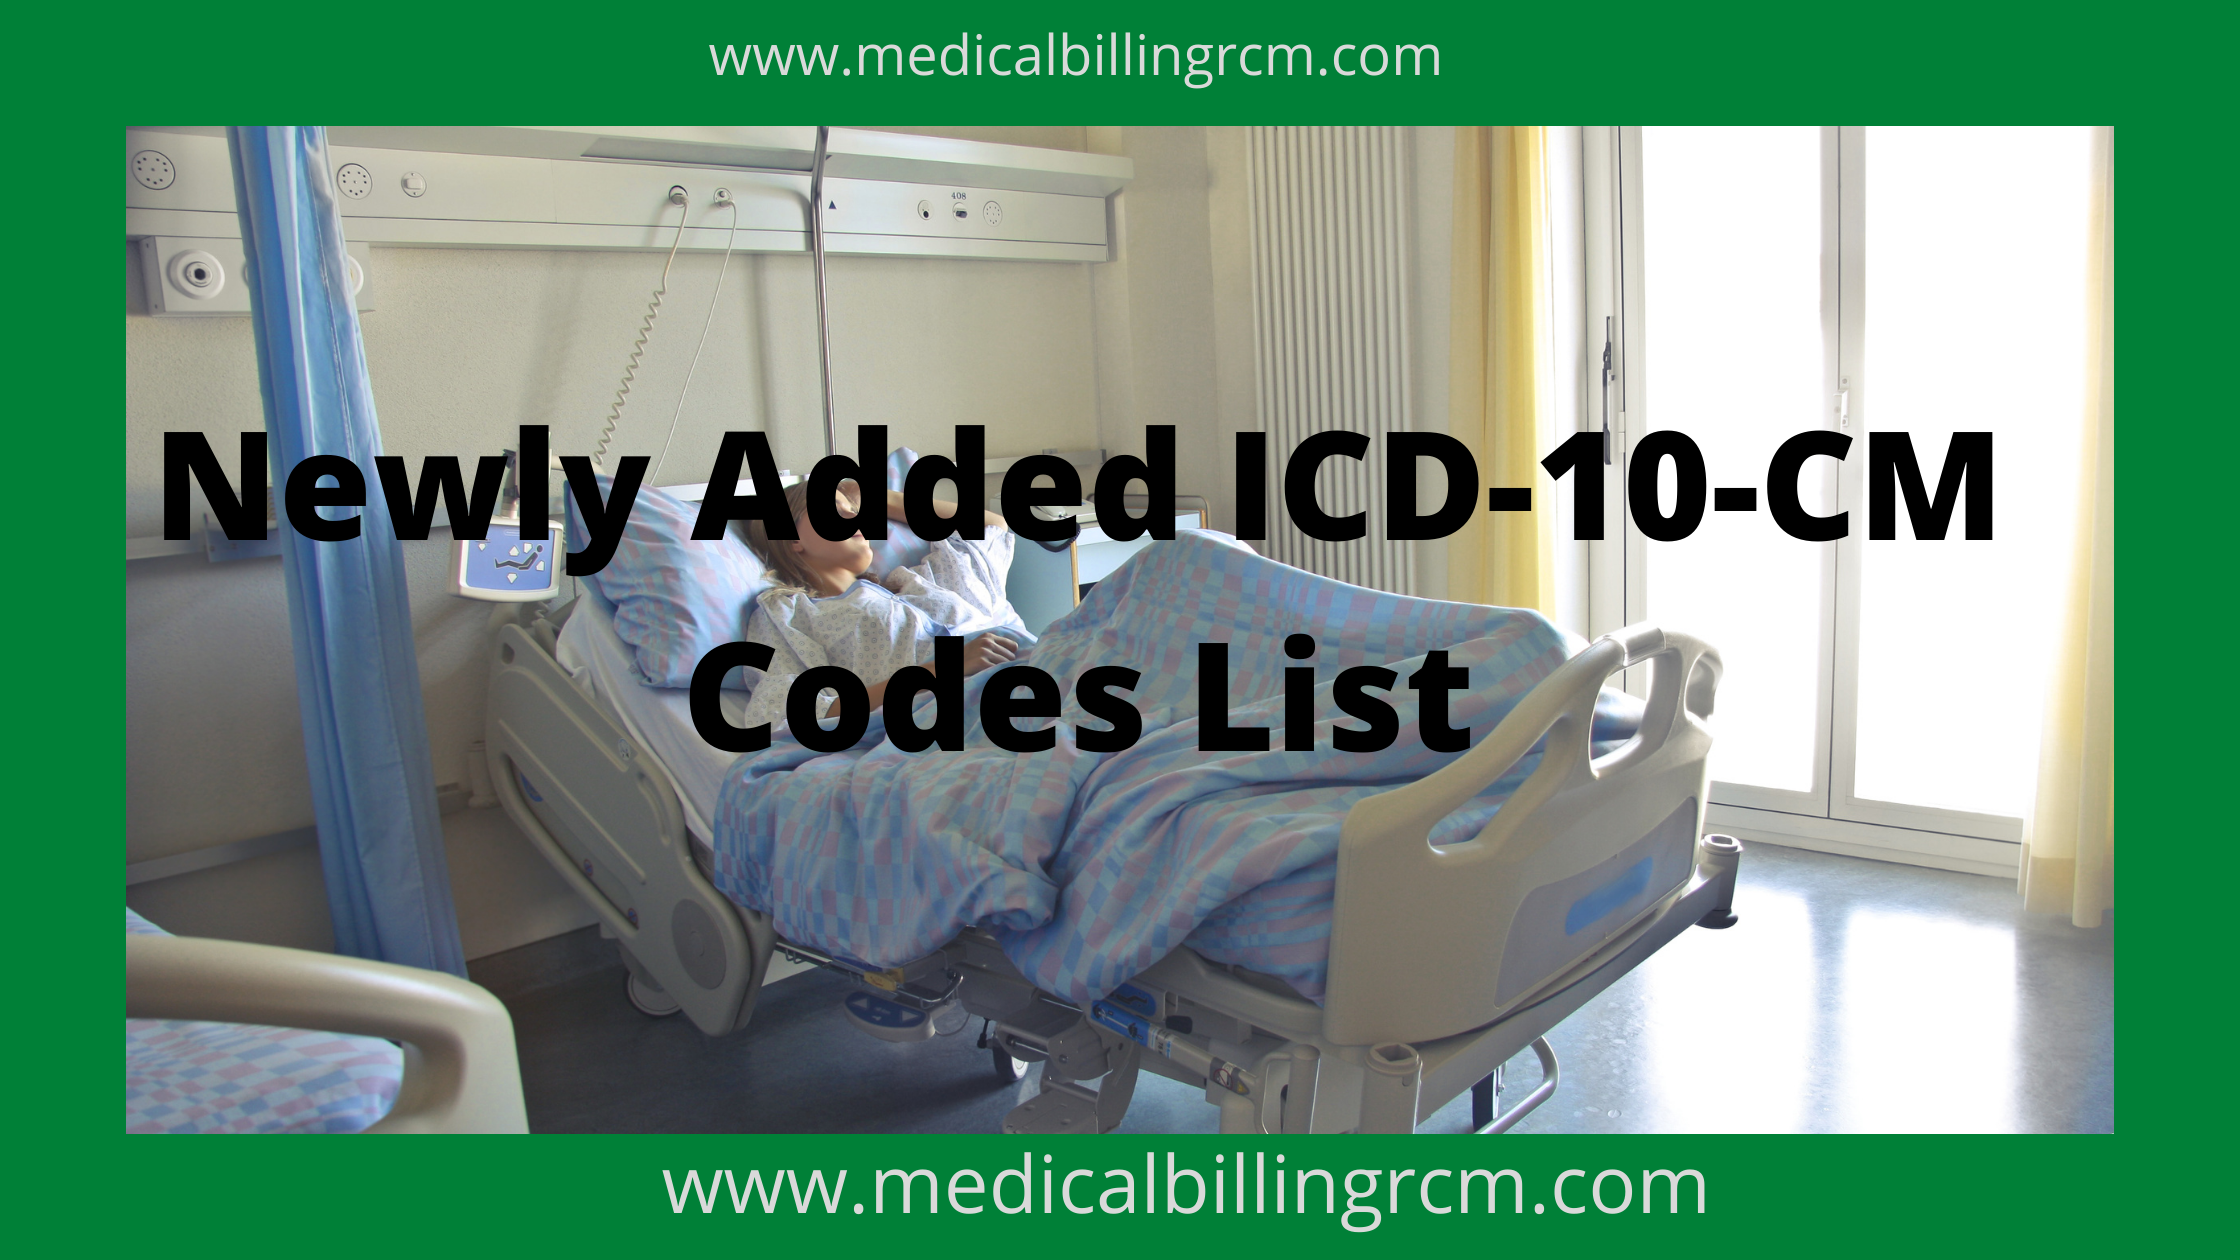 newly added icd-10-cm codes